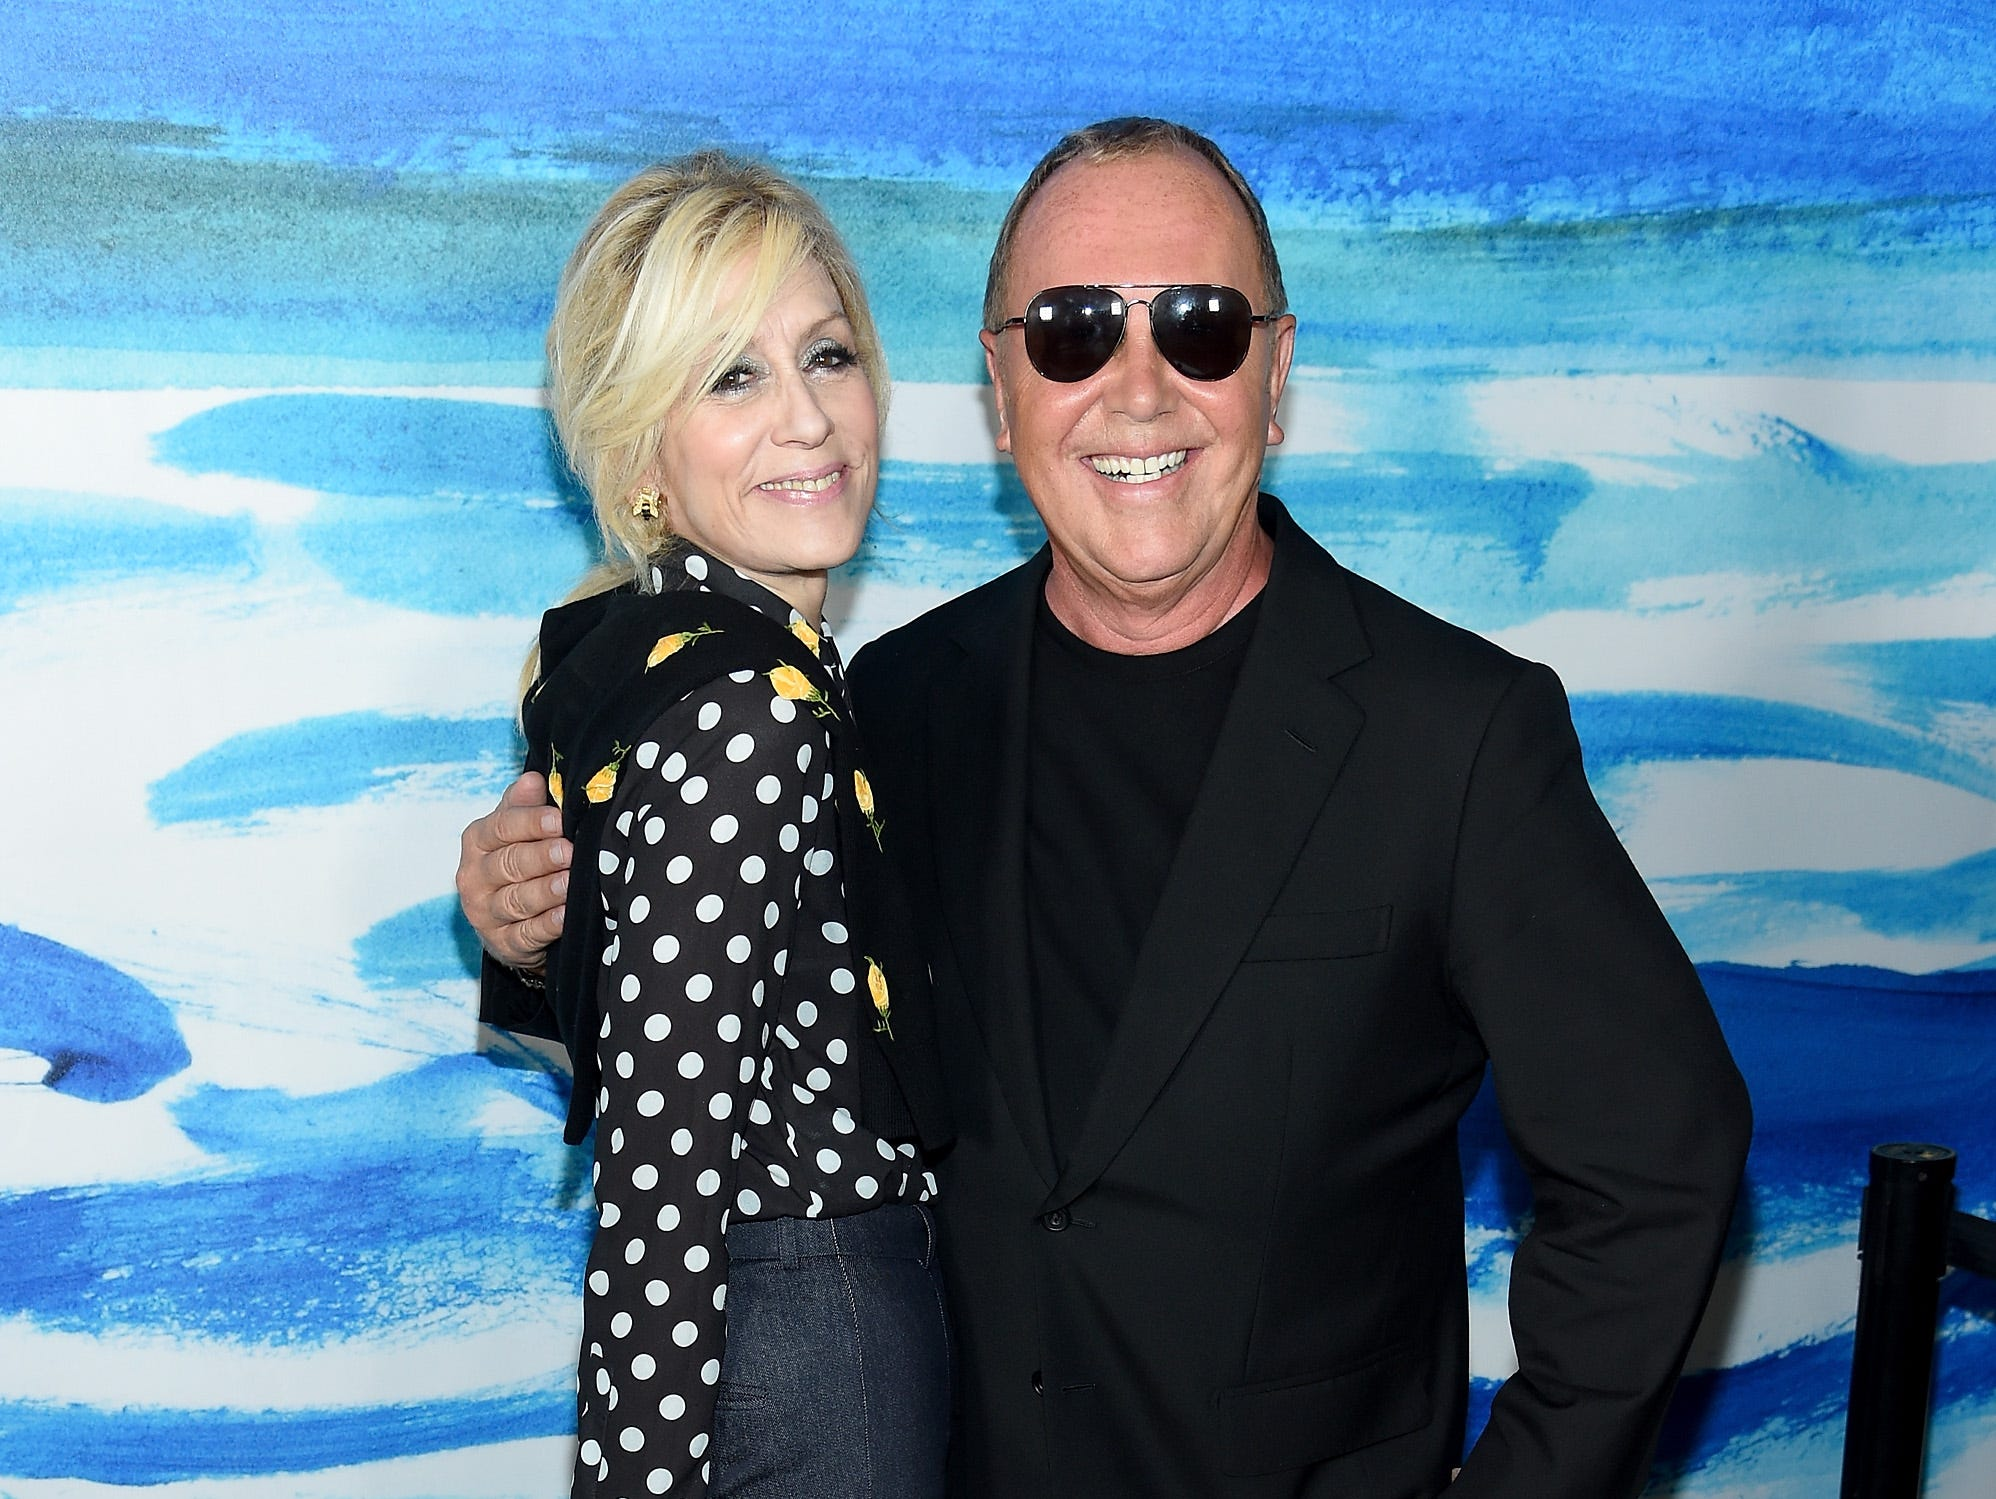 NEW YORK, NY - SEPTEMBER 12: Judith Light (L) and Michael Kors pose backstage during the Michael Kors Collection Spring 2019 Runway Show at Pier 17 on September 12, 2018 in New York City.  (Photo by Dimitrios Kambouris/Getty Images for Michael Kors) ORG XMIT: 775216954 ORIG FILE ID: 1032135616